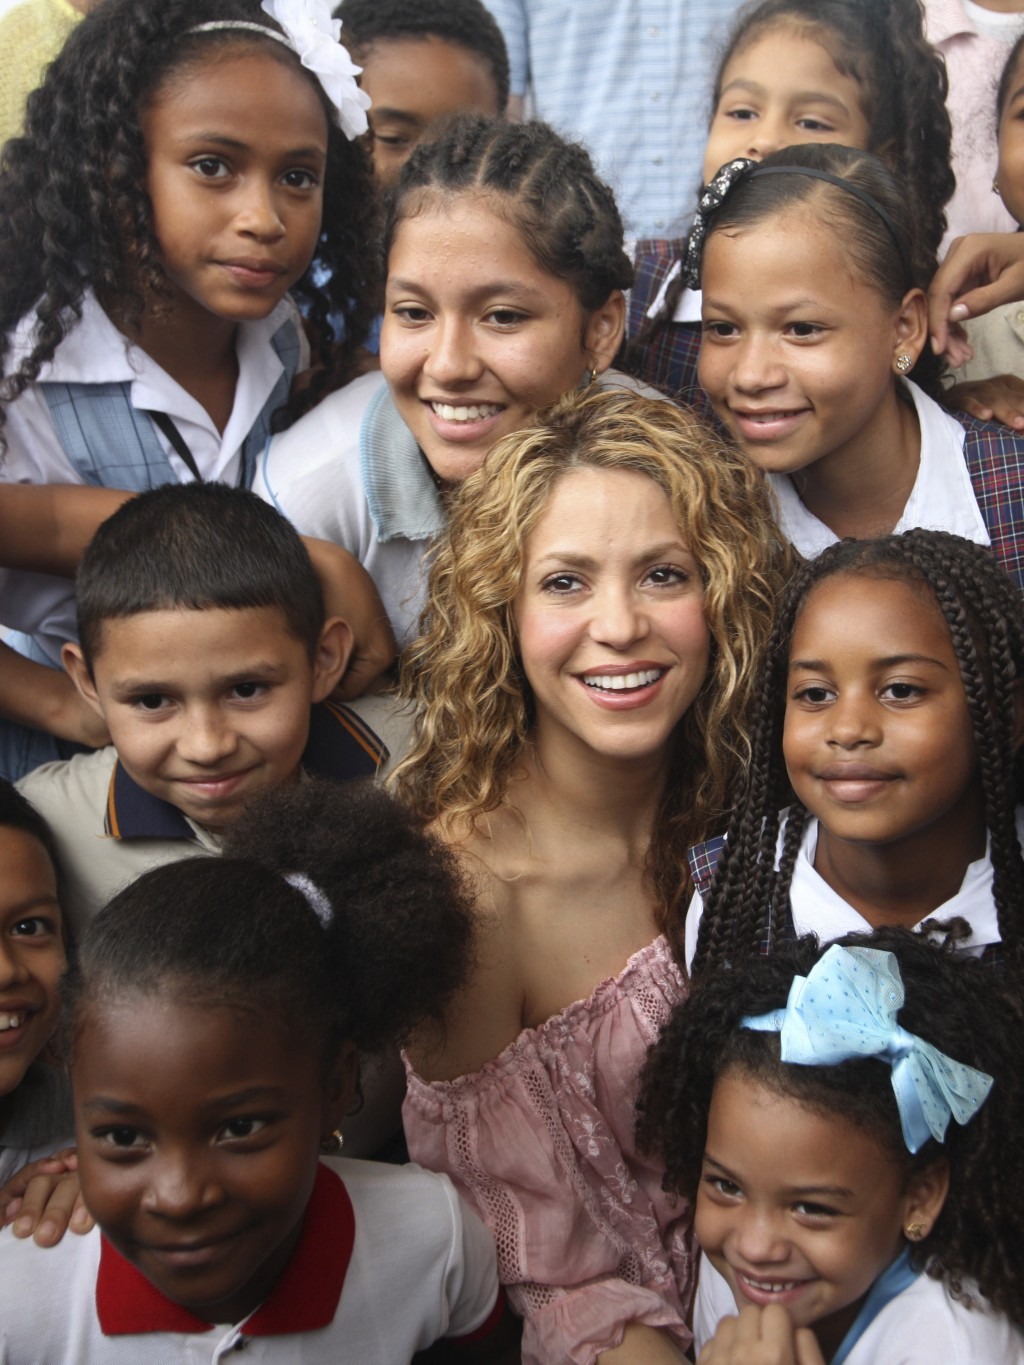 Colombian pop star Shakira posses with children after laying the cornerstone for a school her Barefoot Foundation will build in the Aranjuez neighborh